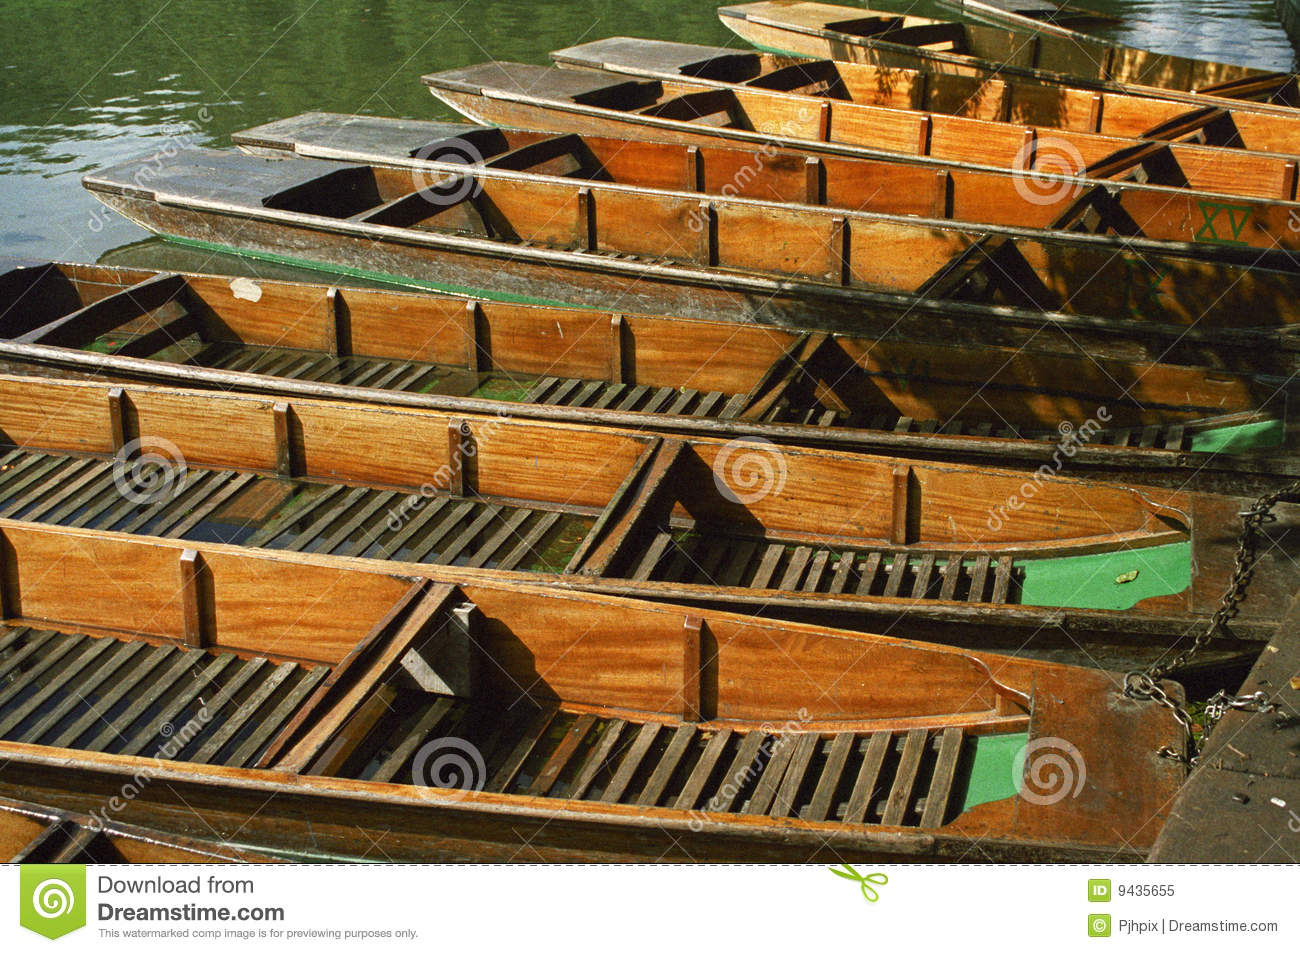 River Boats for Hire